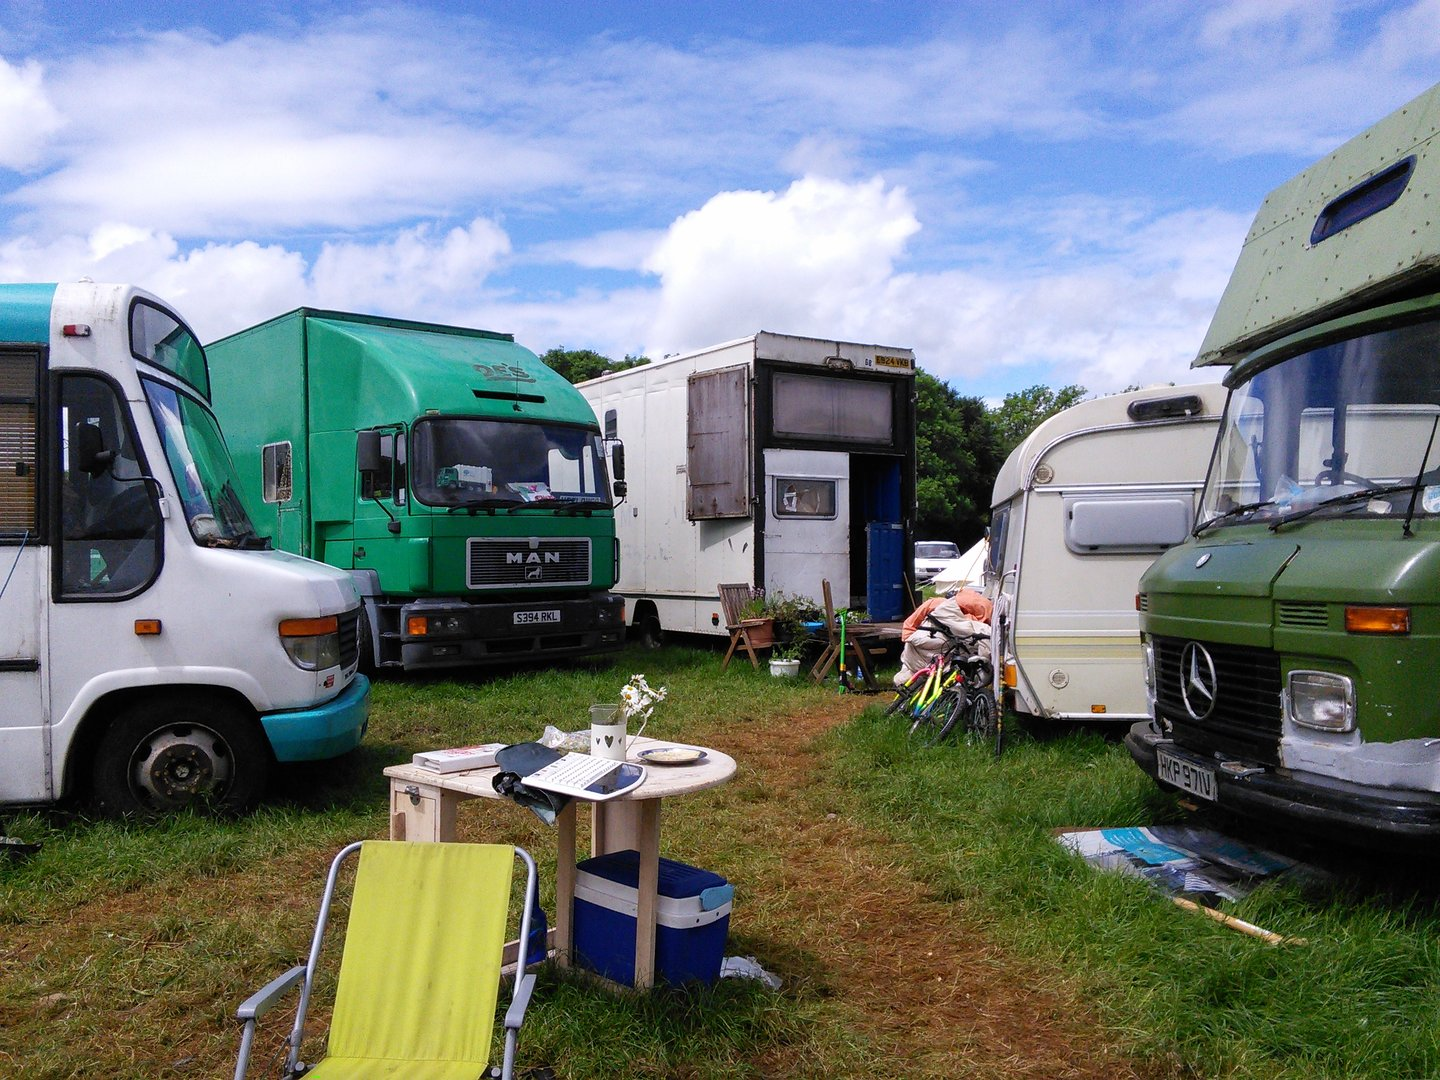 img_20170604_130645-jpg.38872_Hedge-U-Cation Camp 2017, Devon, England_Events / Gatherings / Festivals_Squat the Planet_5:29 AM